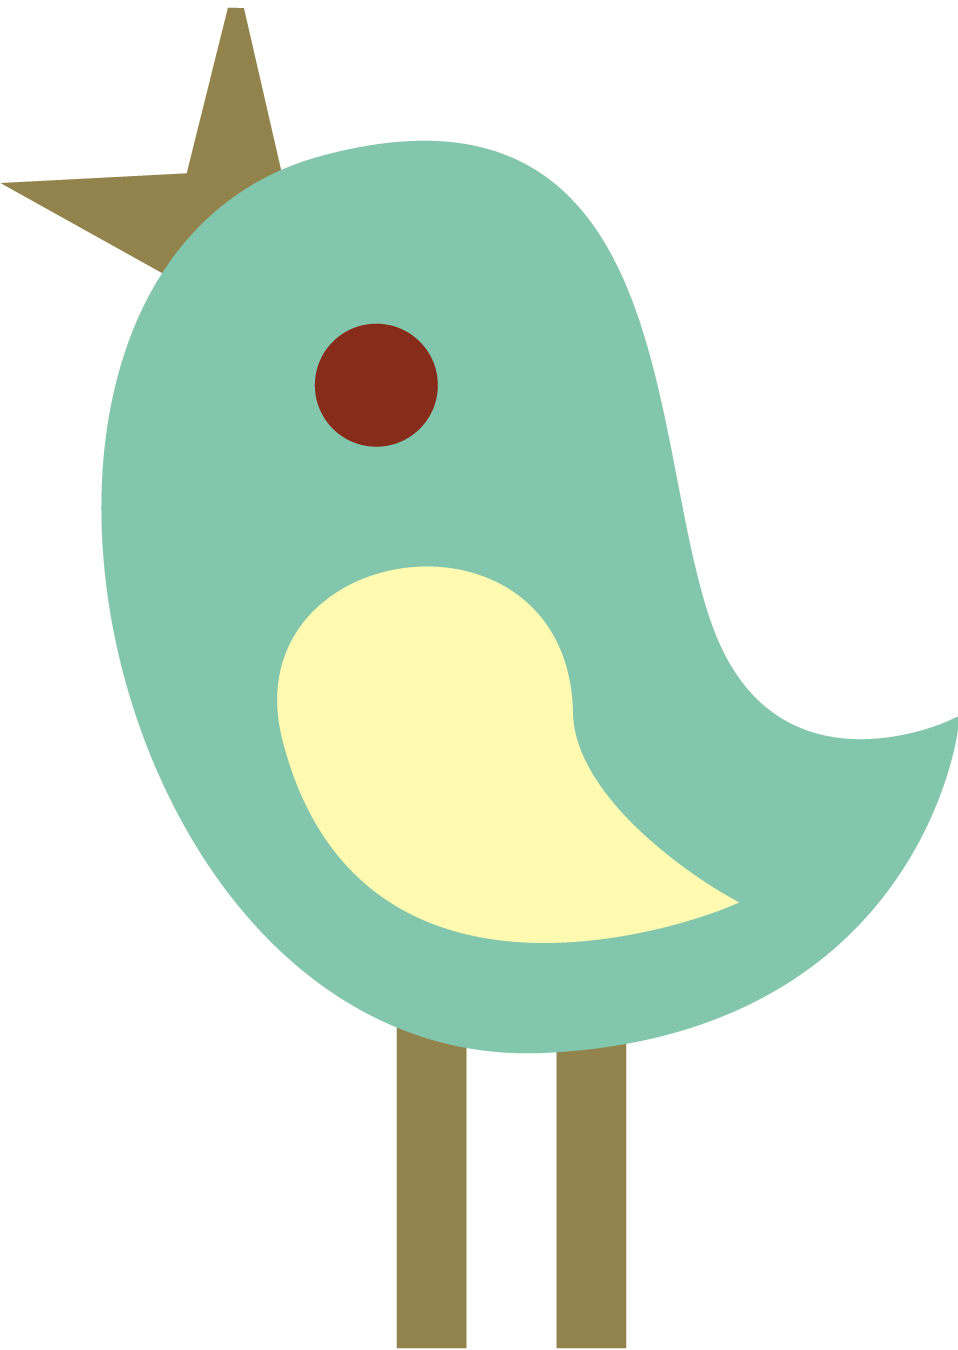 Cute Tweet Birds Clip Art Free Clipart Graphics Revidevi Wordpress